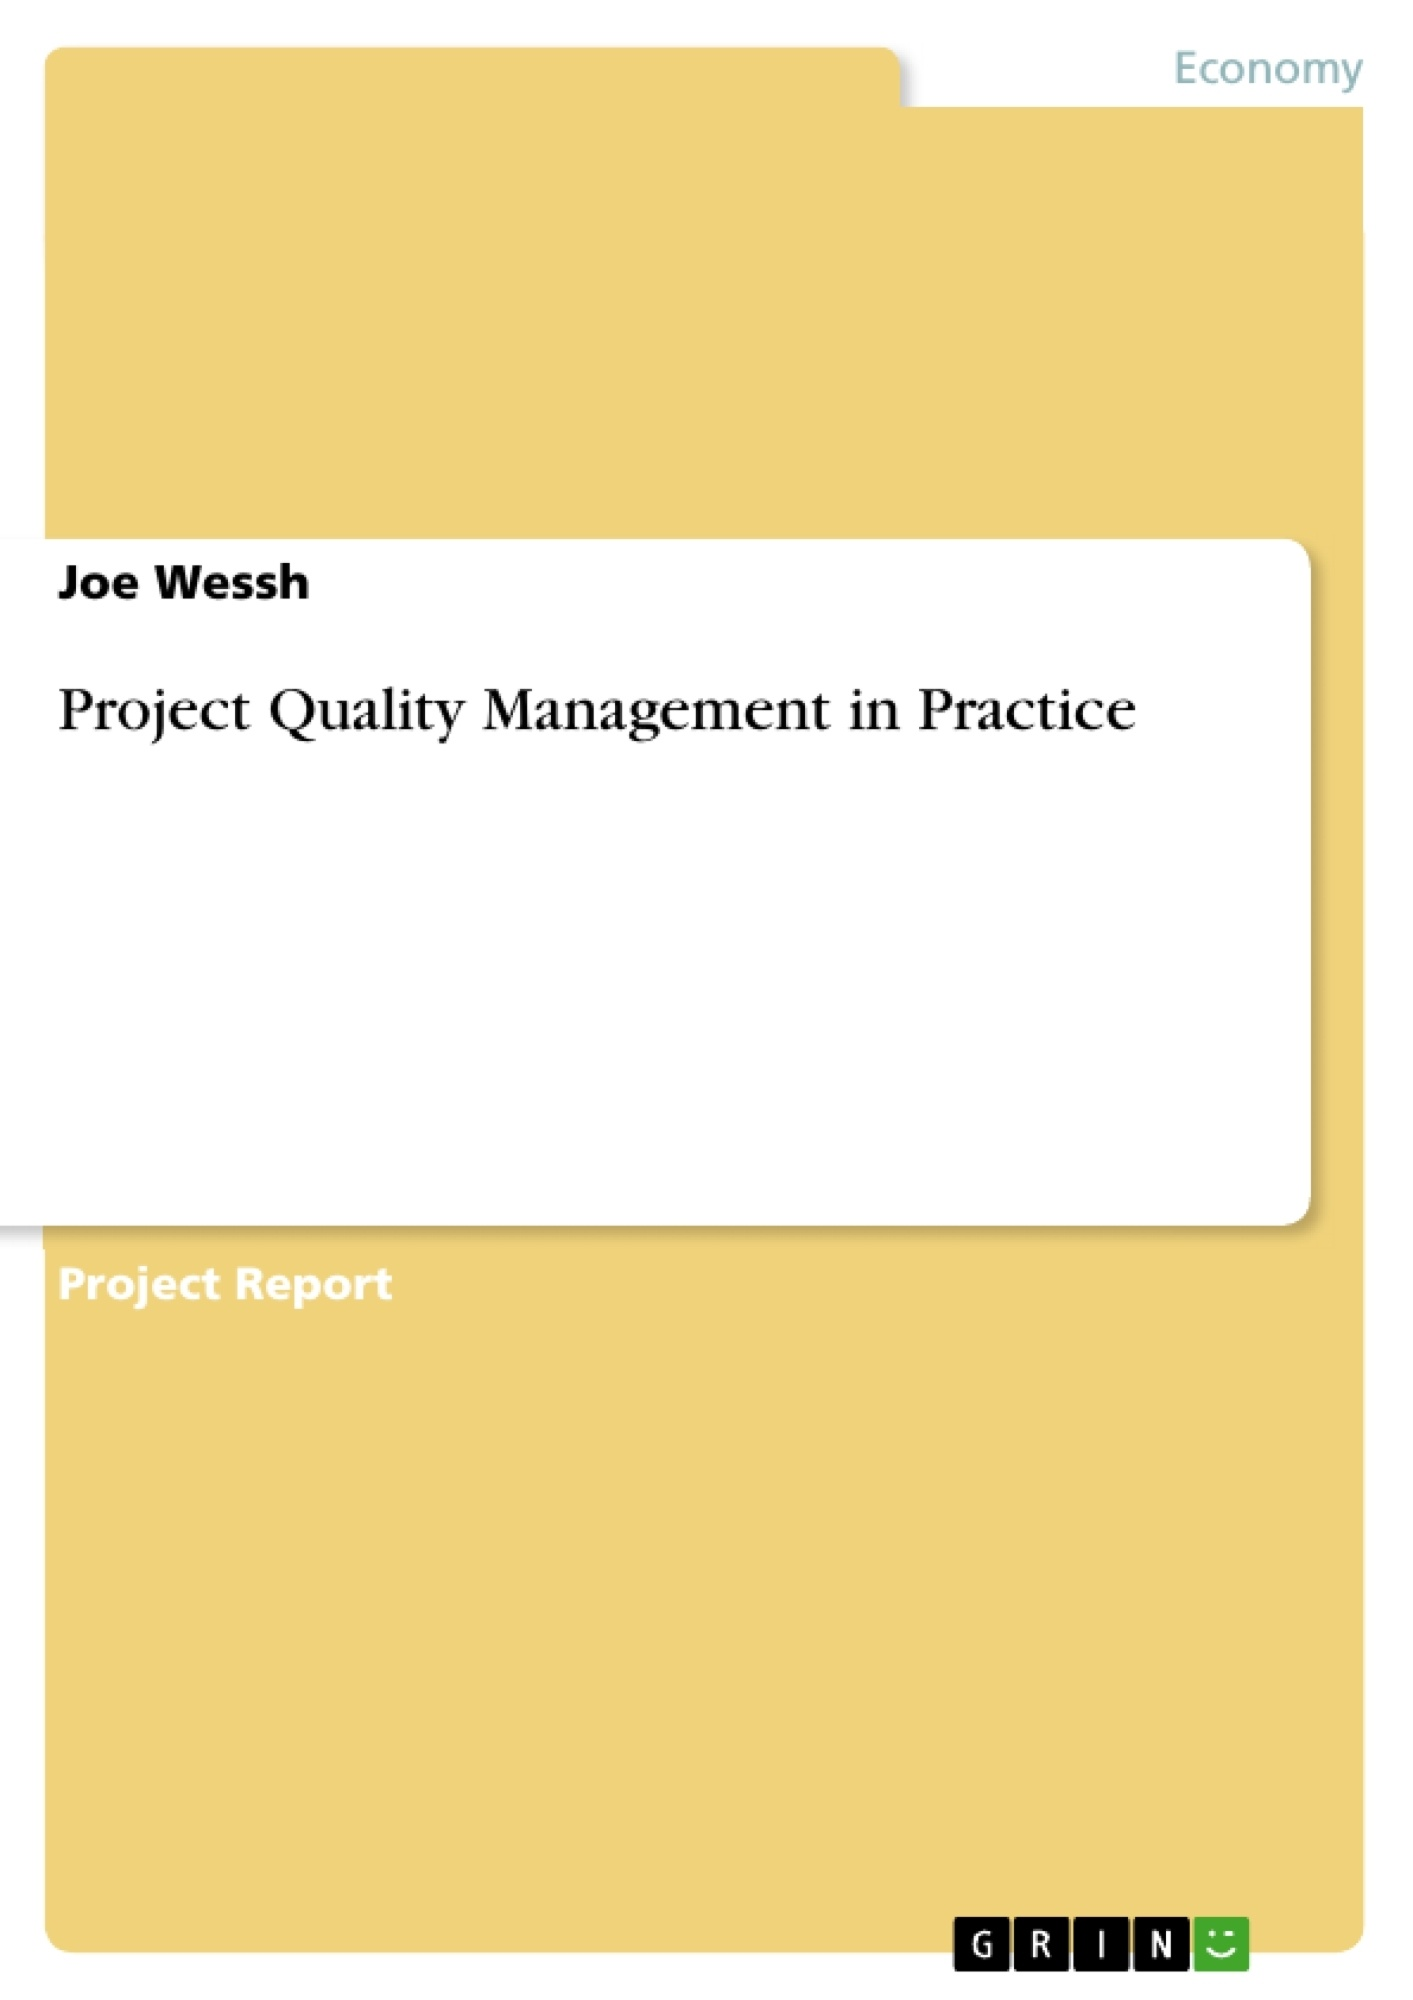 Title: Project Quality Management in Practice